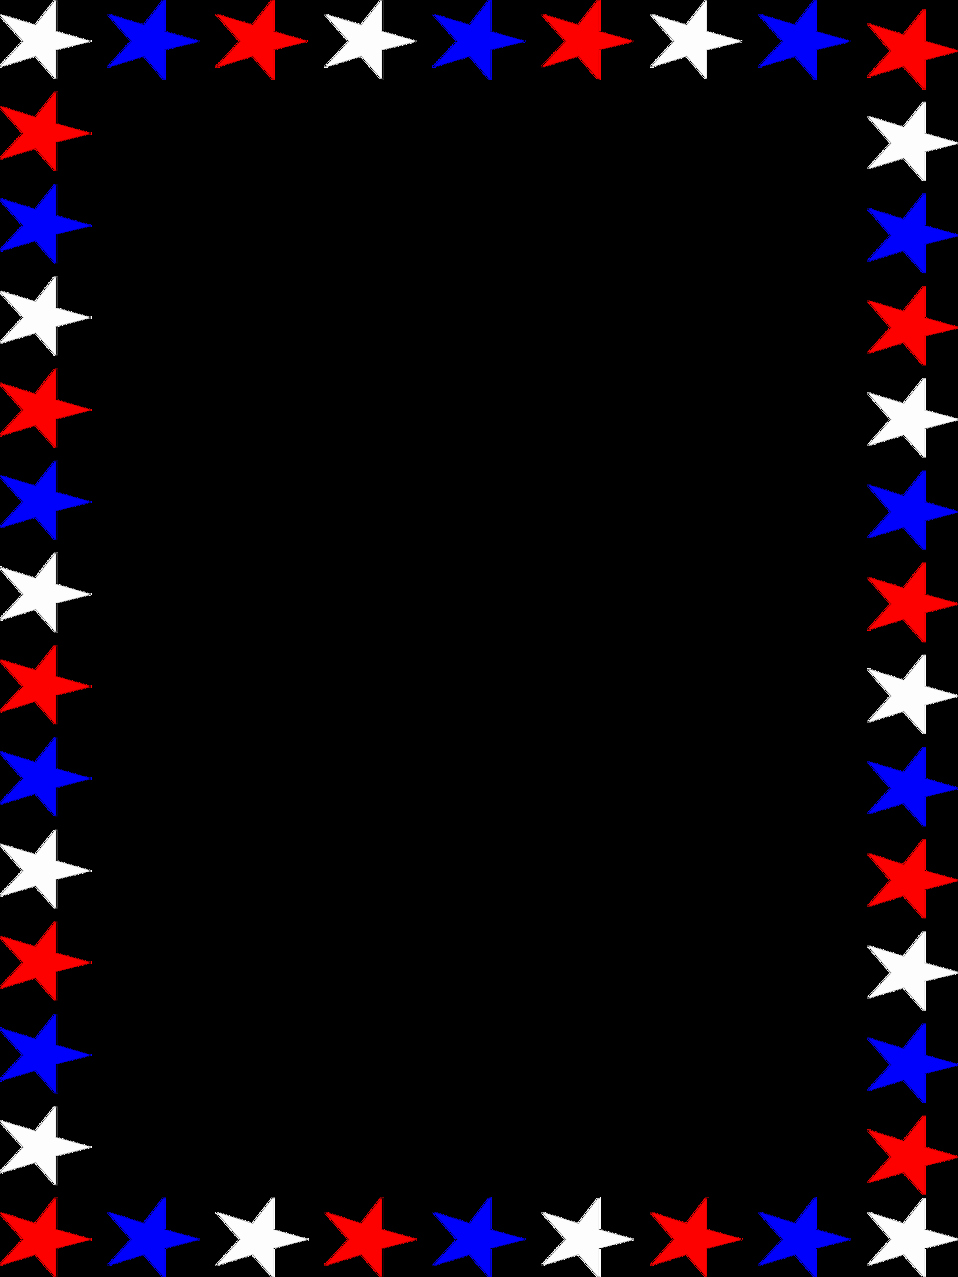 American Flag Border for Word Elegant Stars Free Stock